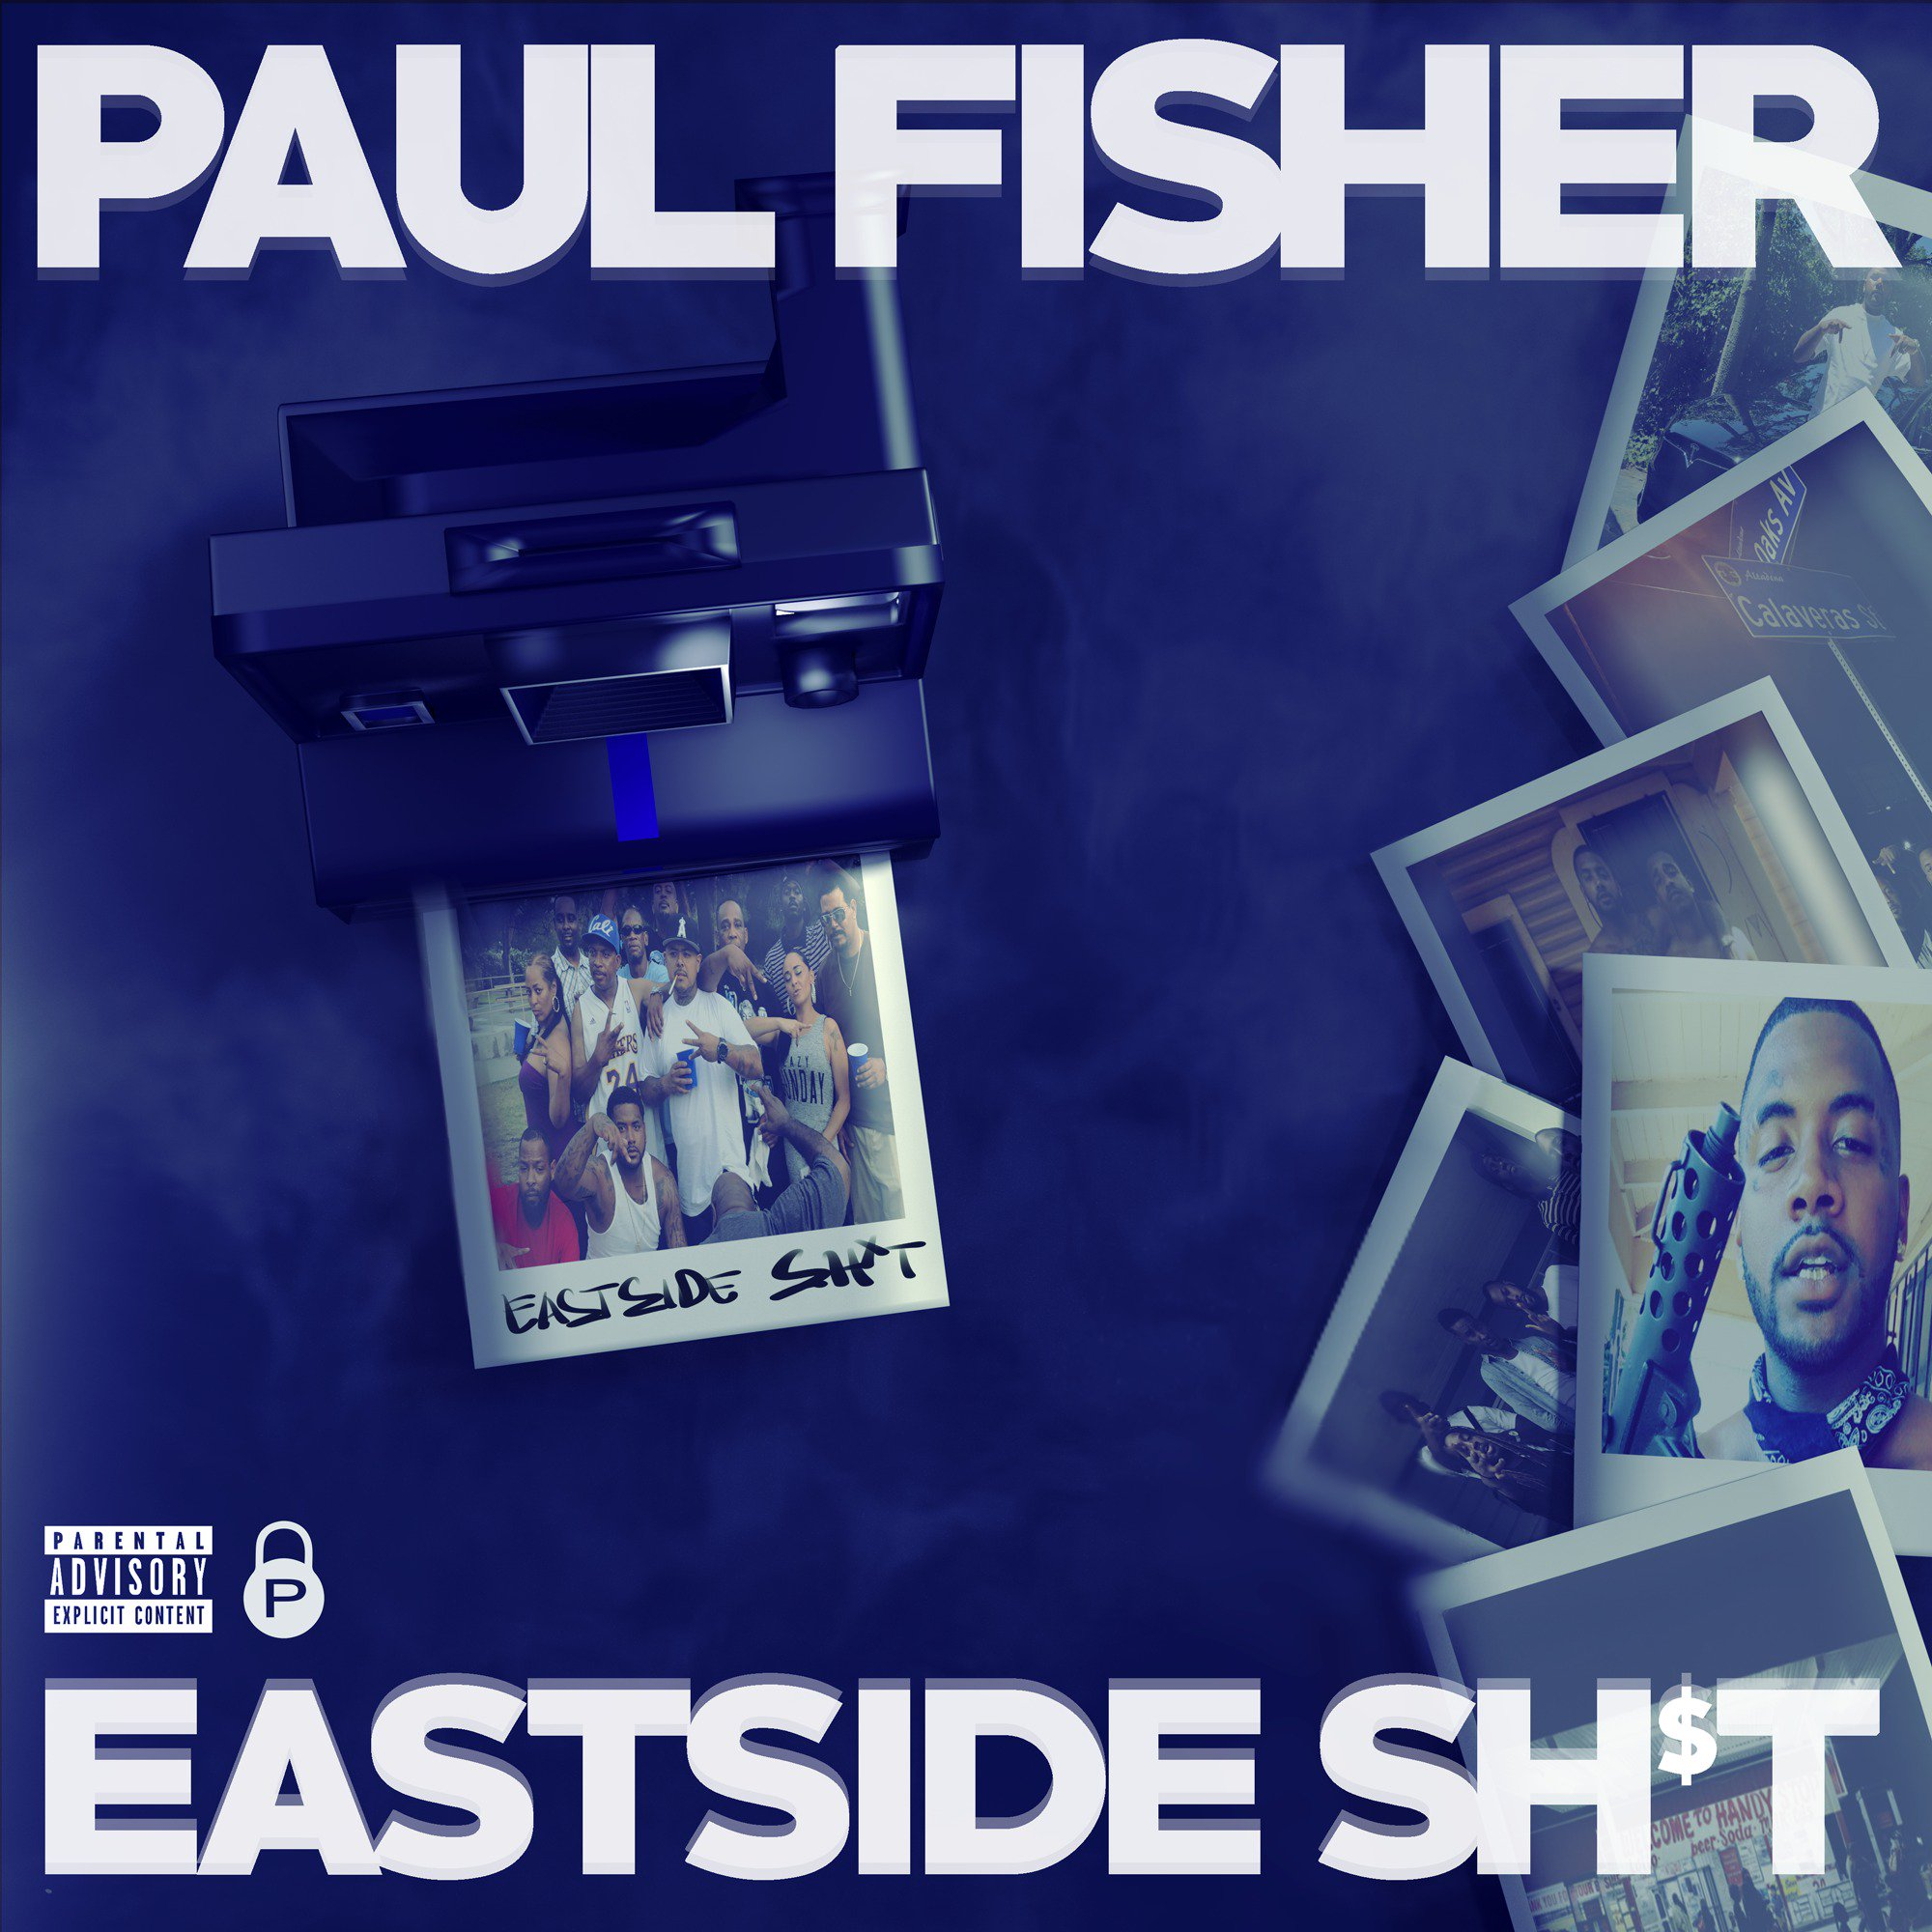 �� #EASTSIDESHIT OUT NOW! ��  @PaulFisher210 AND JFRANK BRING THAT HEAT!  AVAILABLE ON ALL PLATFORMS, DON'T SLEEP! https://t.co/3KuCRr8ZJj